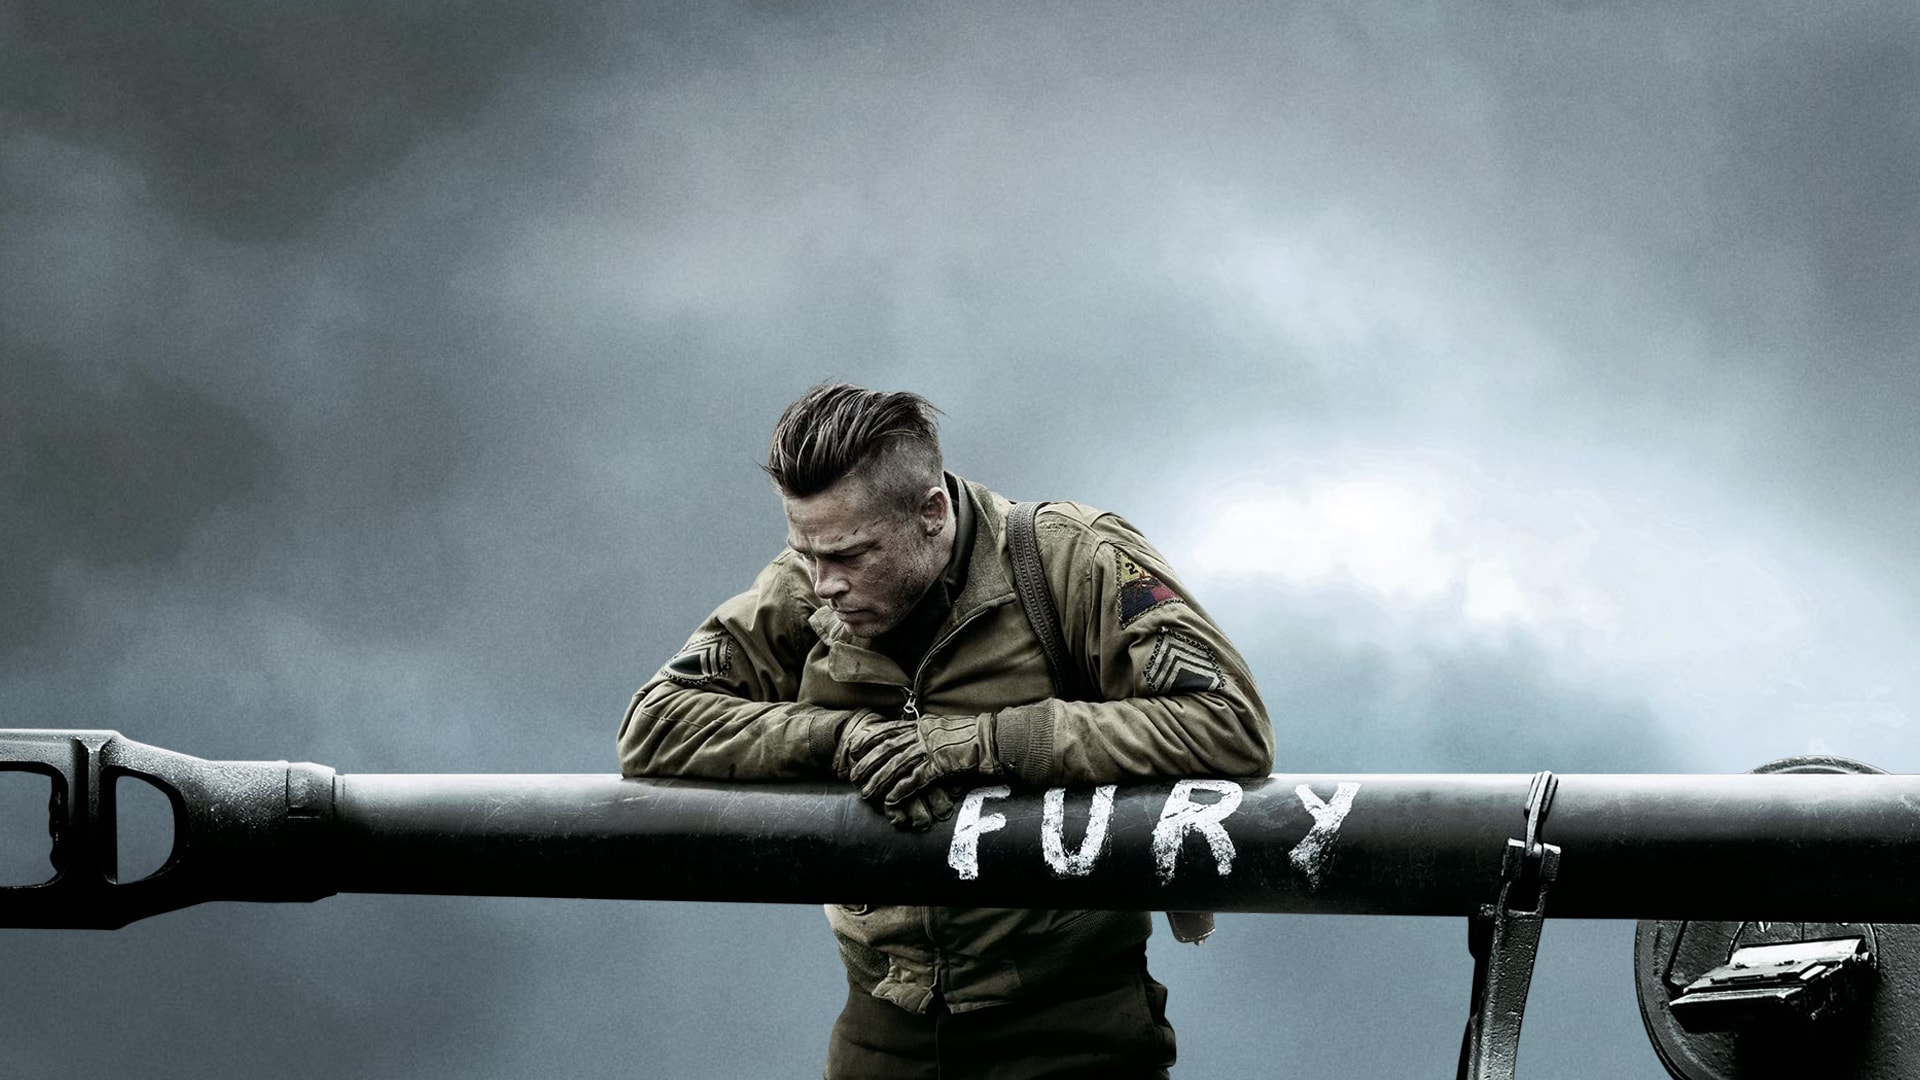 Fury widescreen wallpapers